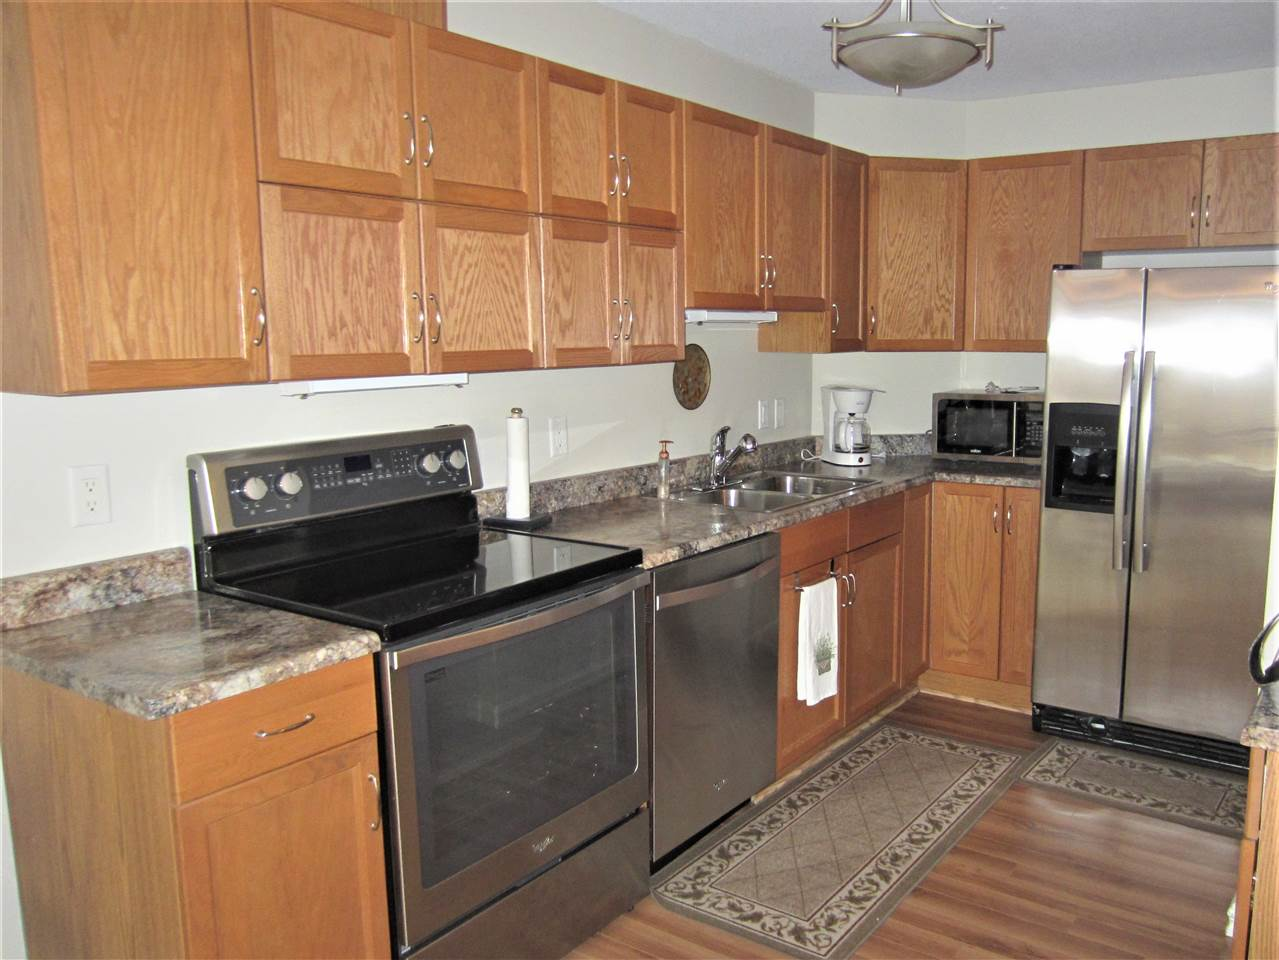 S/S appliances, lots of cabinet space